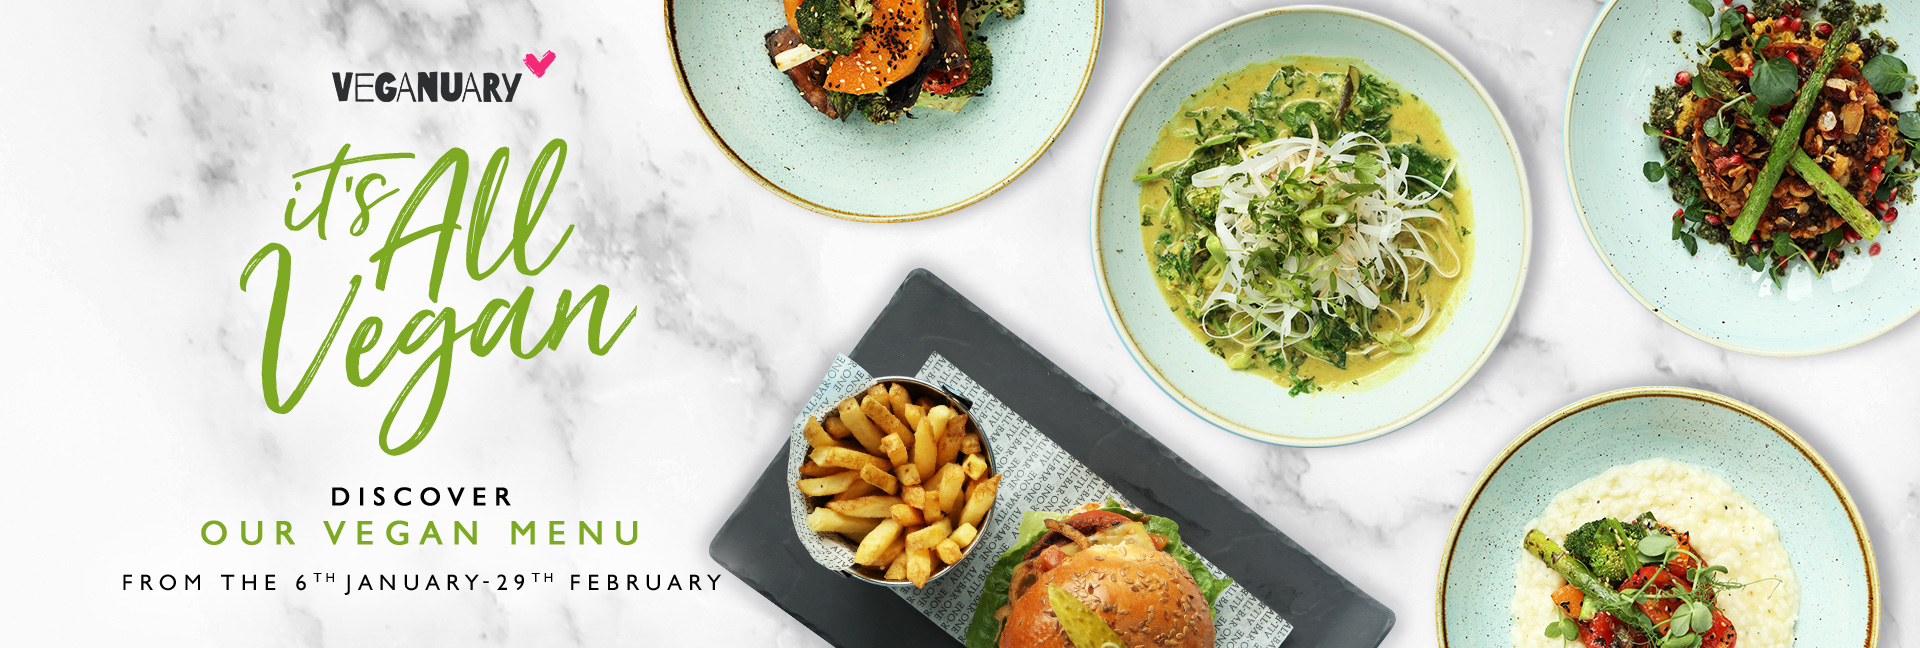 Veganuary Menu at All Bar One New Oxford Street